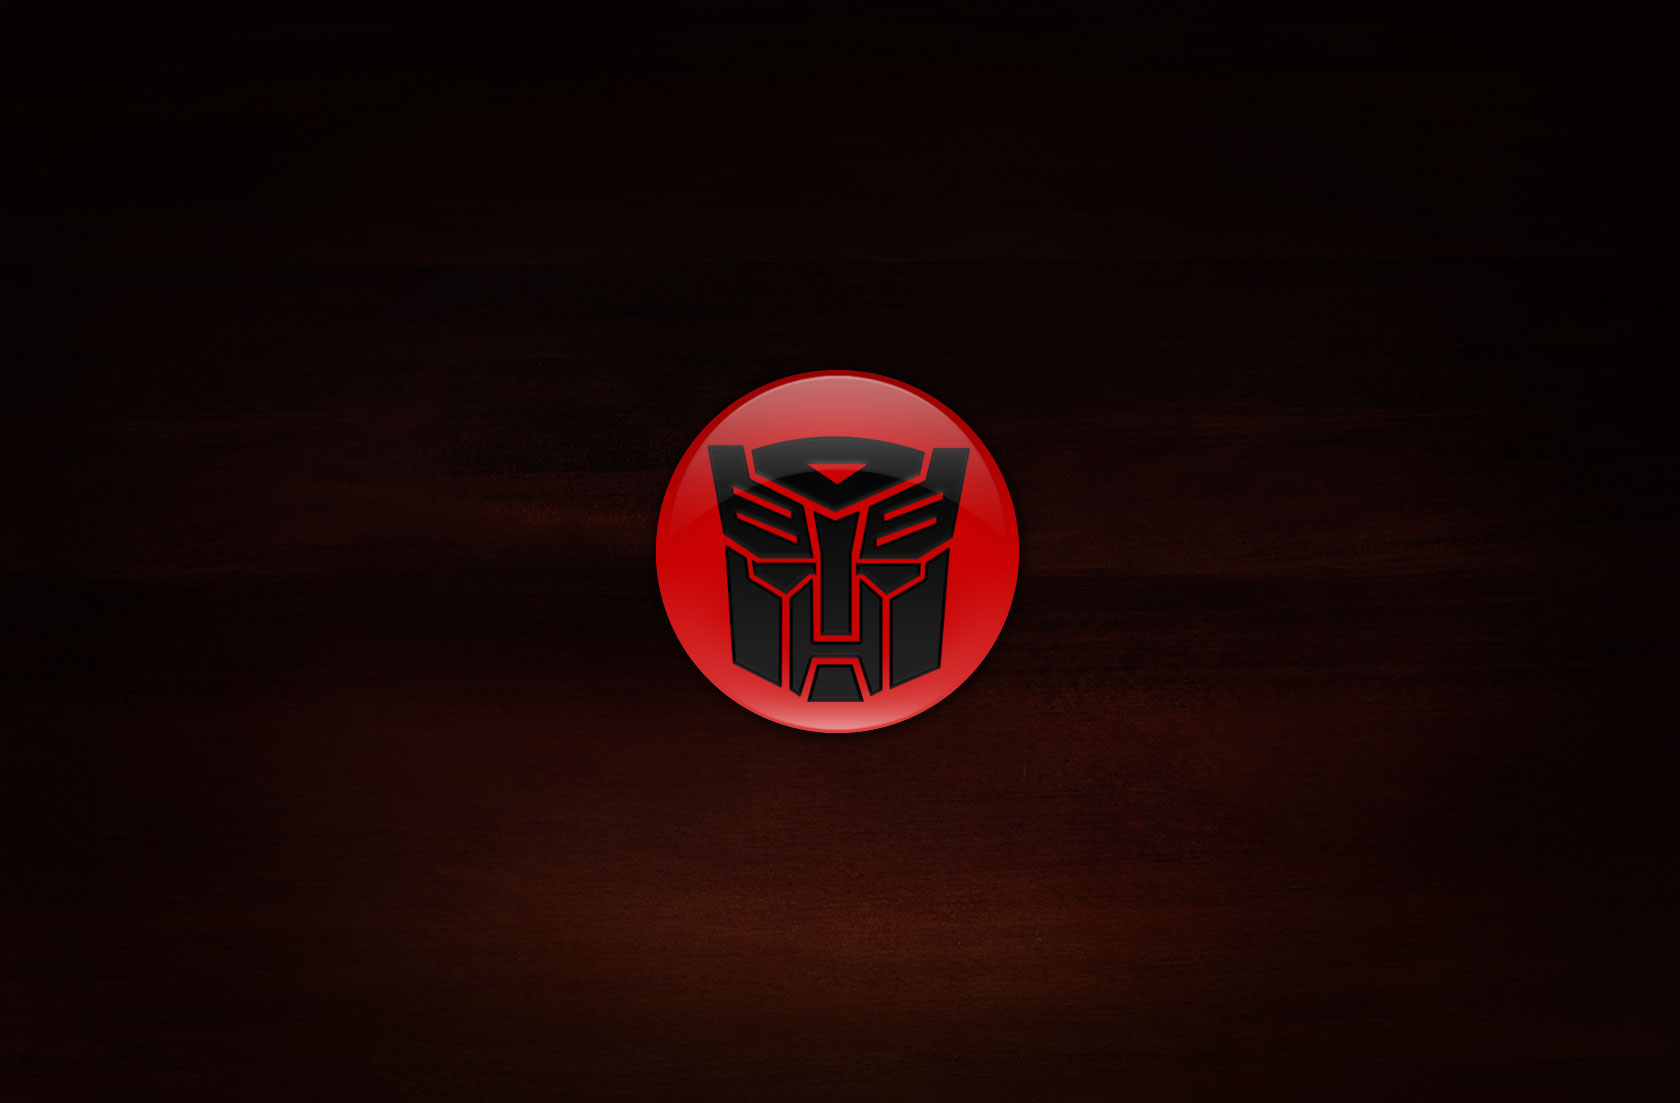 Transformers Logo Hd Free Transformers Symbol Download Free Clip